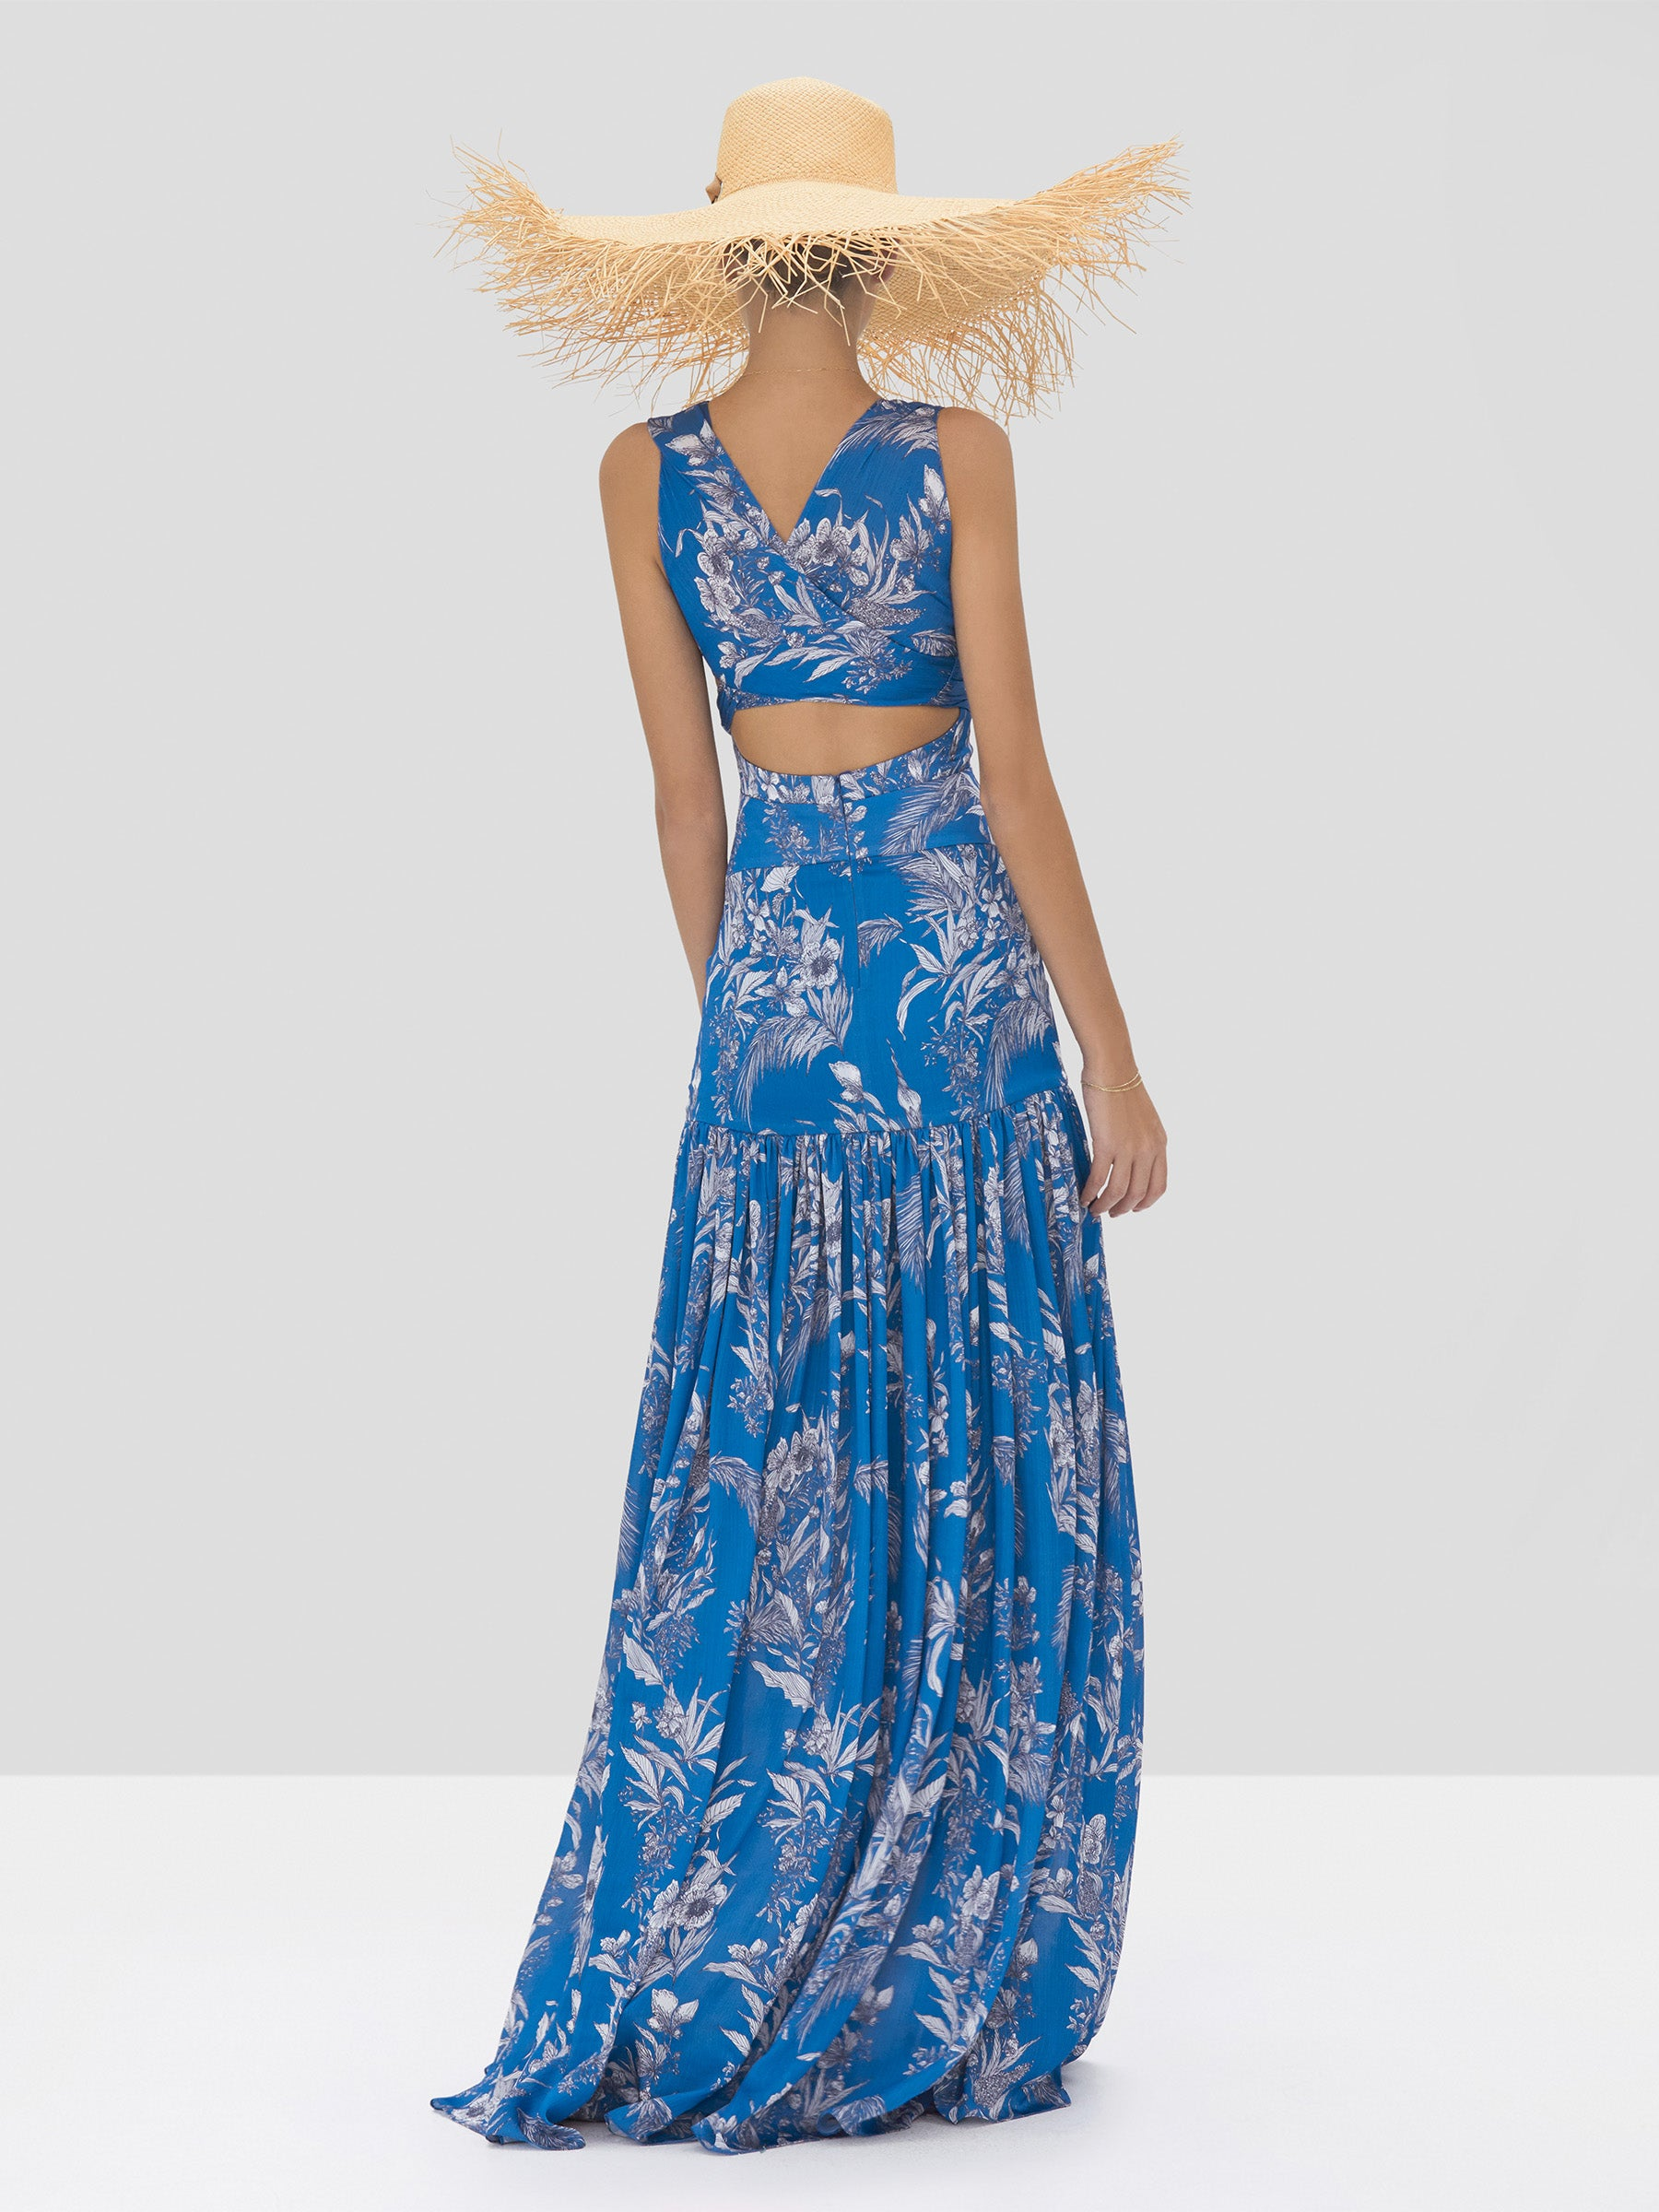 Alexis Belaya Dress in Blue Palm from Spring Summer 2020 Collection - Rear View